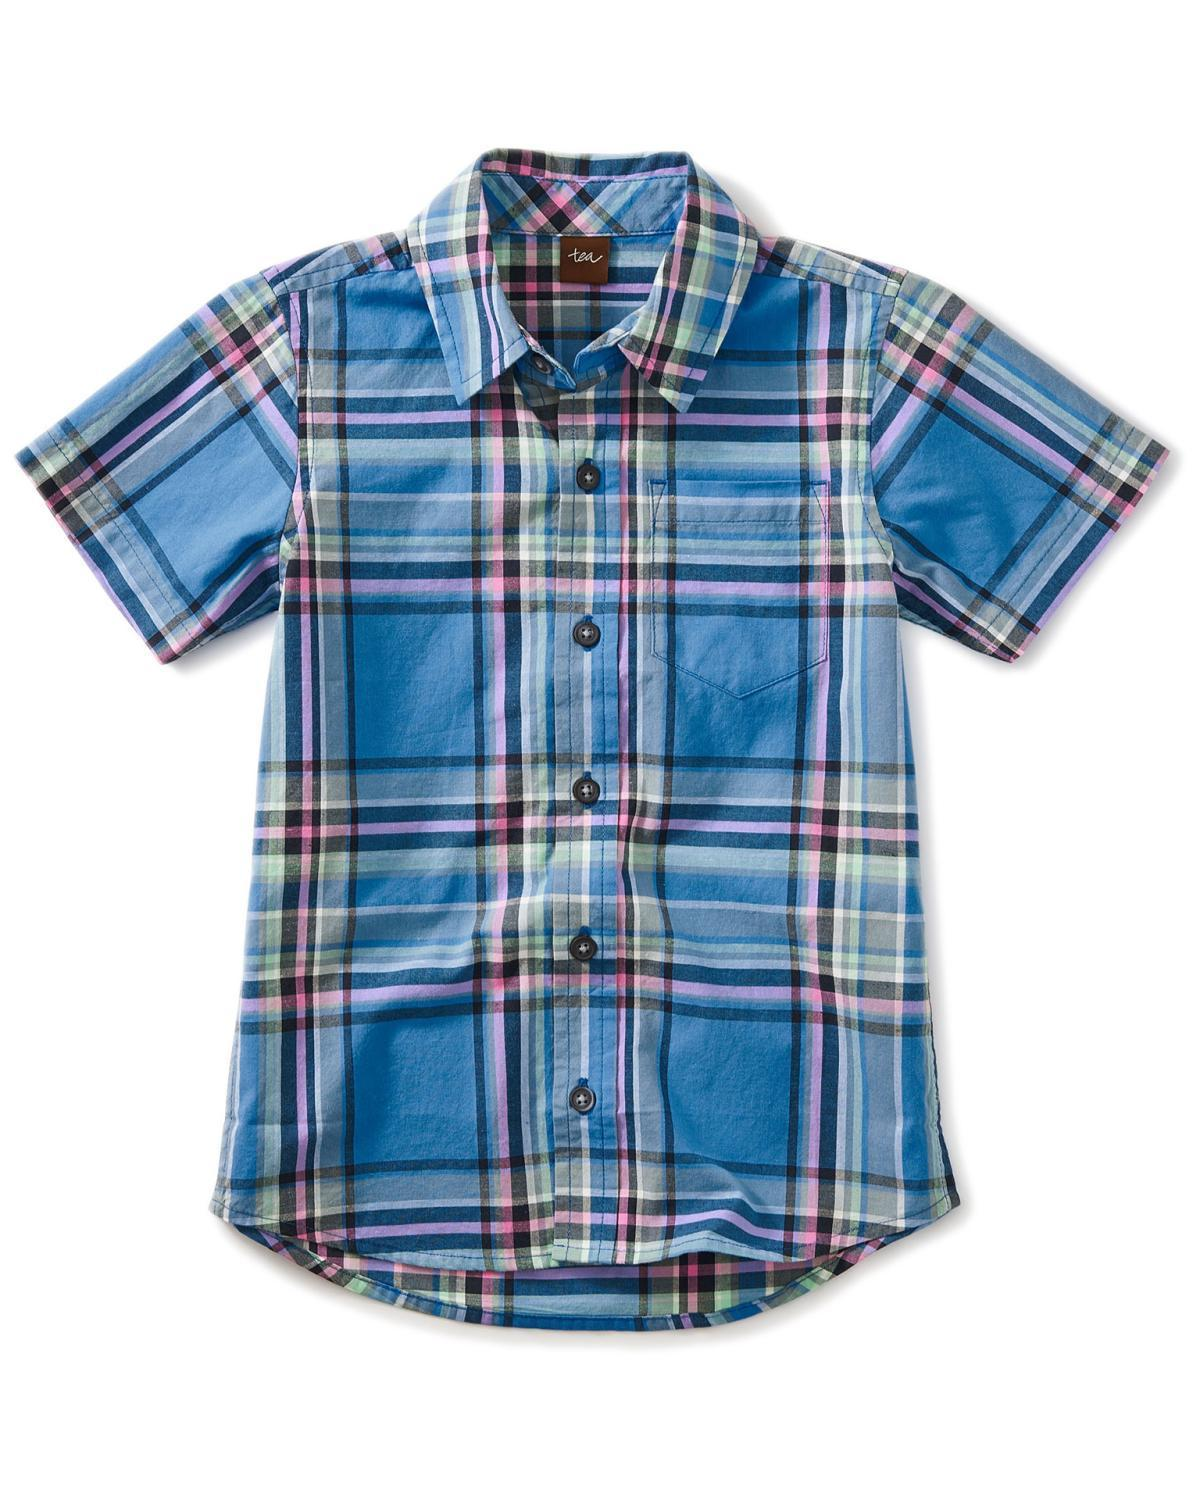 Little tea collection boy 10 madras woven shirt